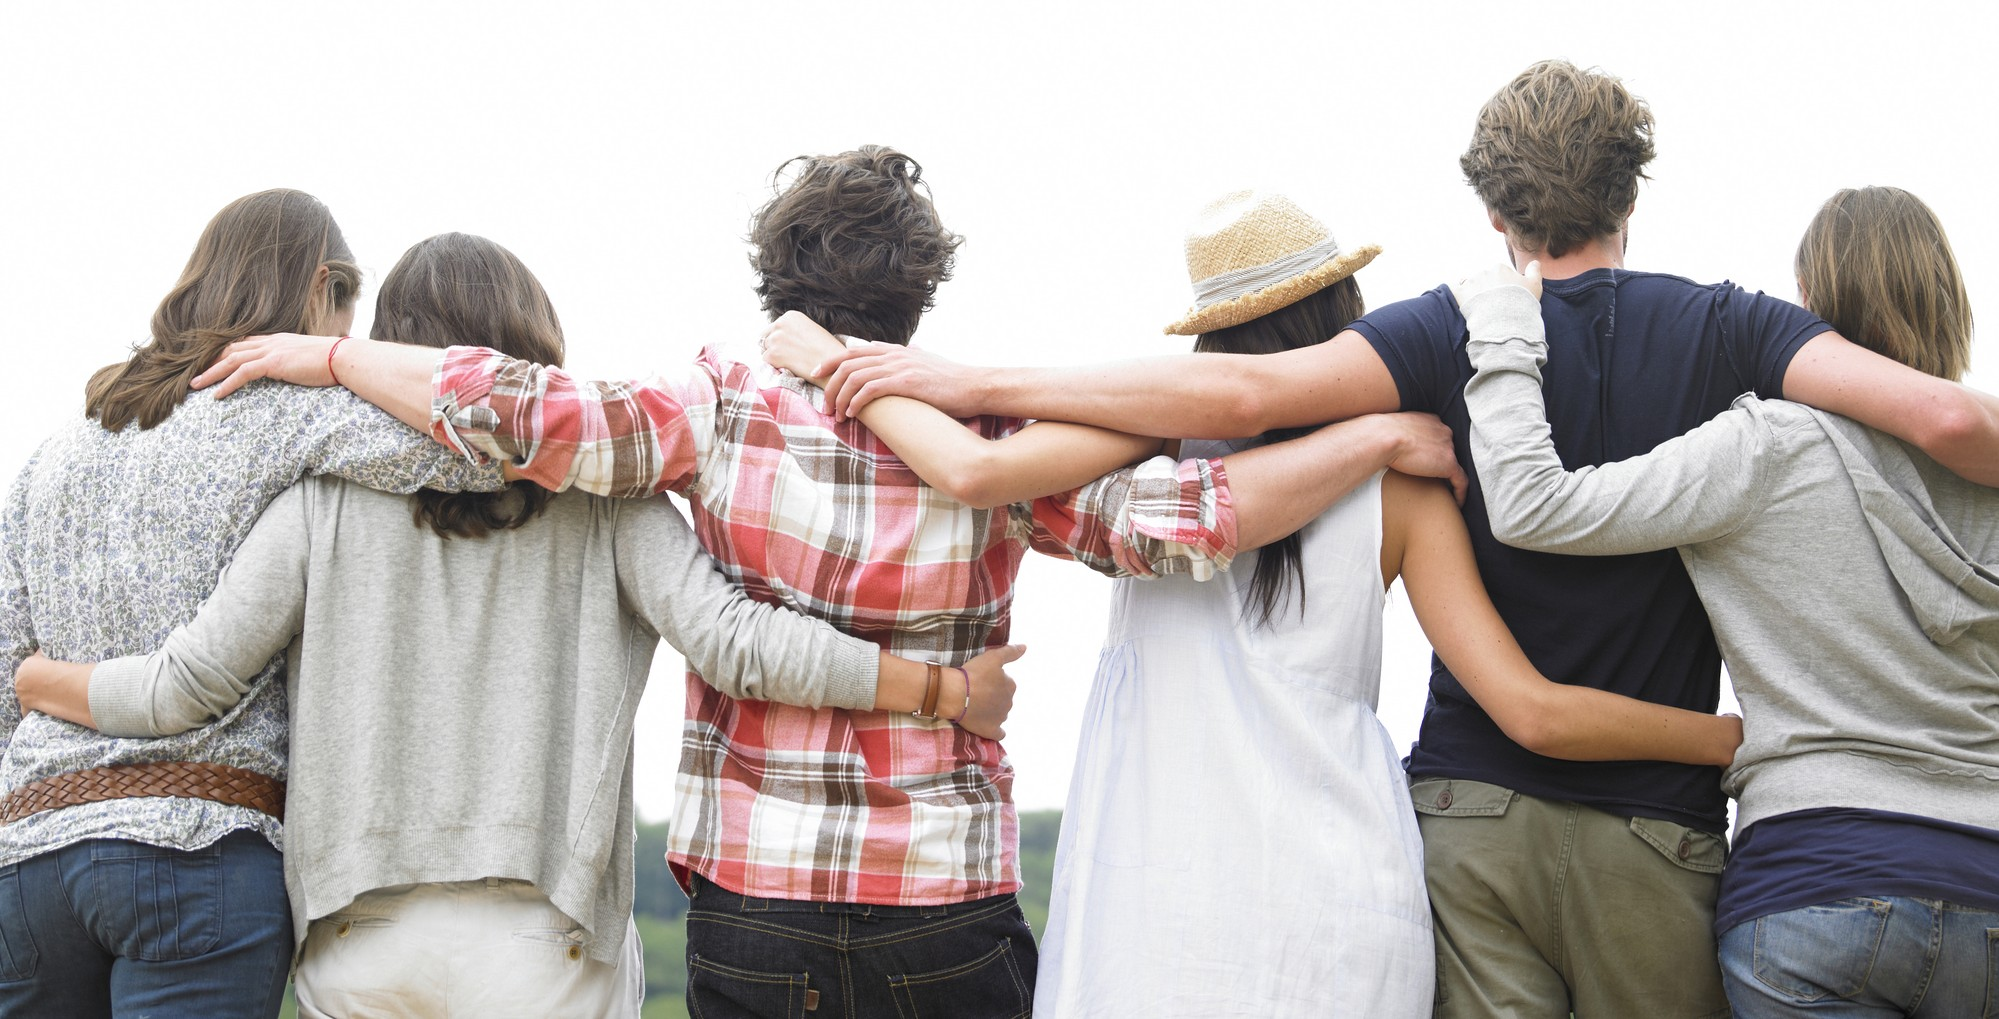 Image result for group of people hugging